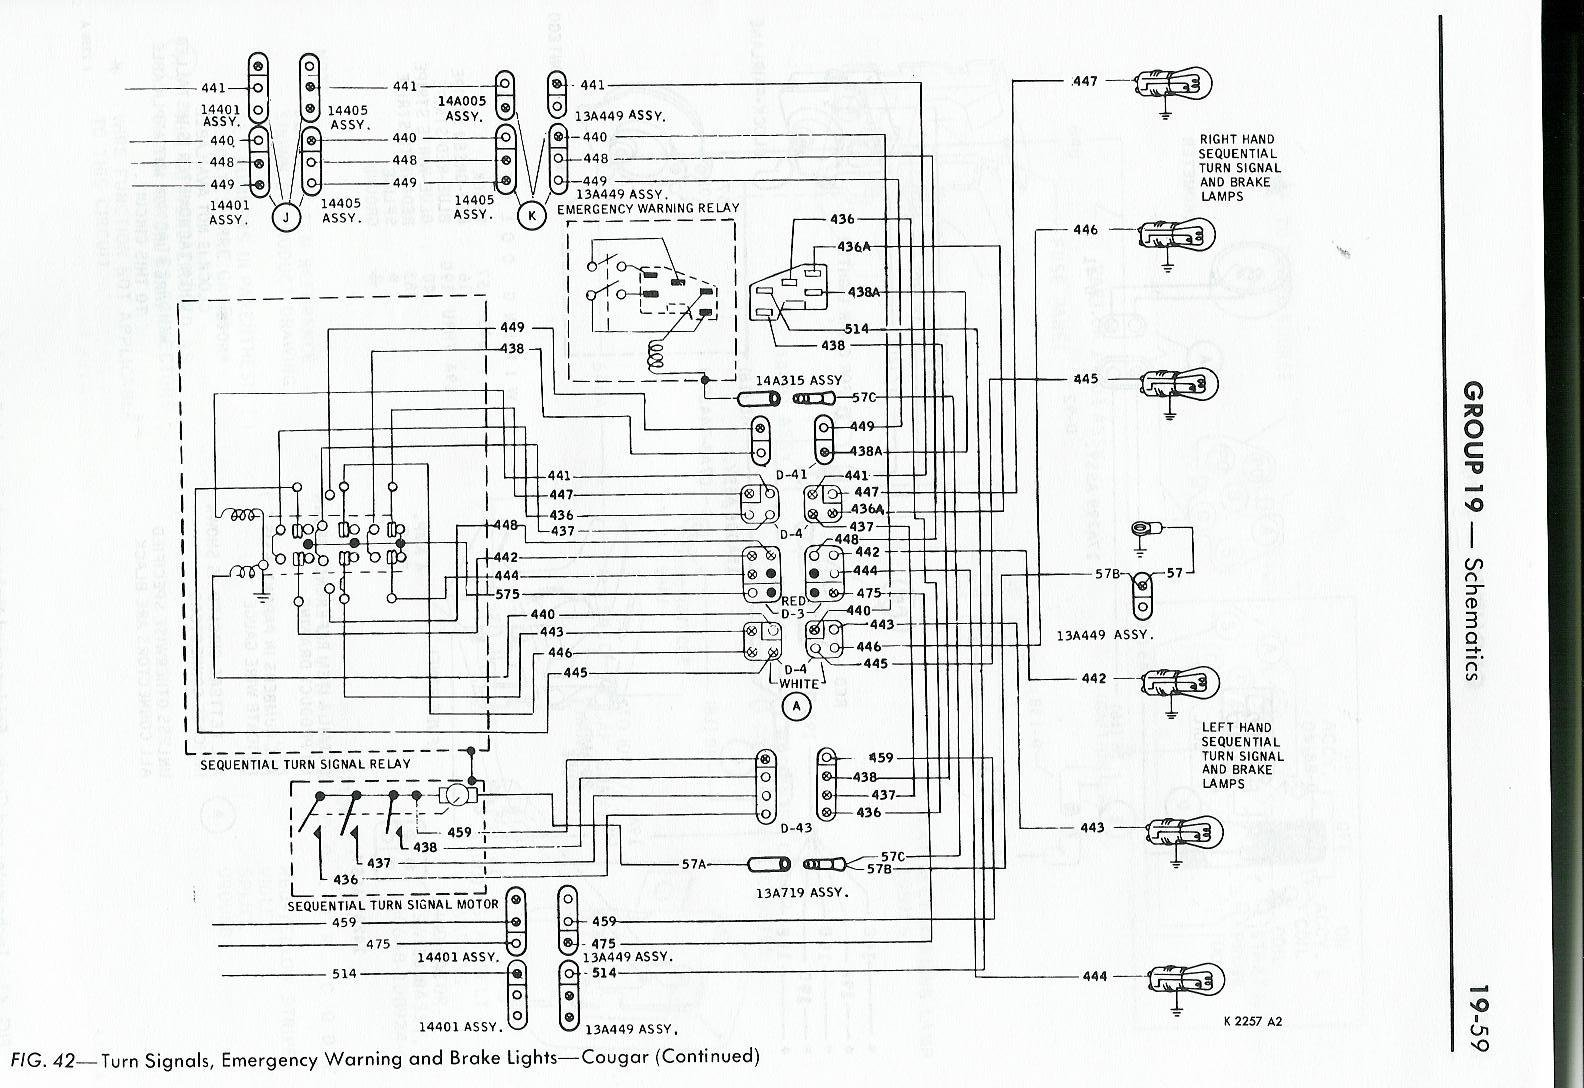 68 Cougar Wiring Diagram - Wiring Diagram Schema on 68 mustang fuse panel diagram, 68 mustang horn wiring diagram, 68 mustang alternator wiring diagram, 68 mustang brake pedal diagram,